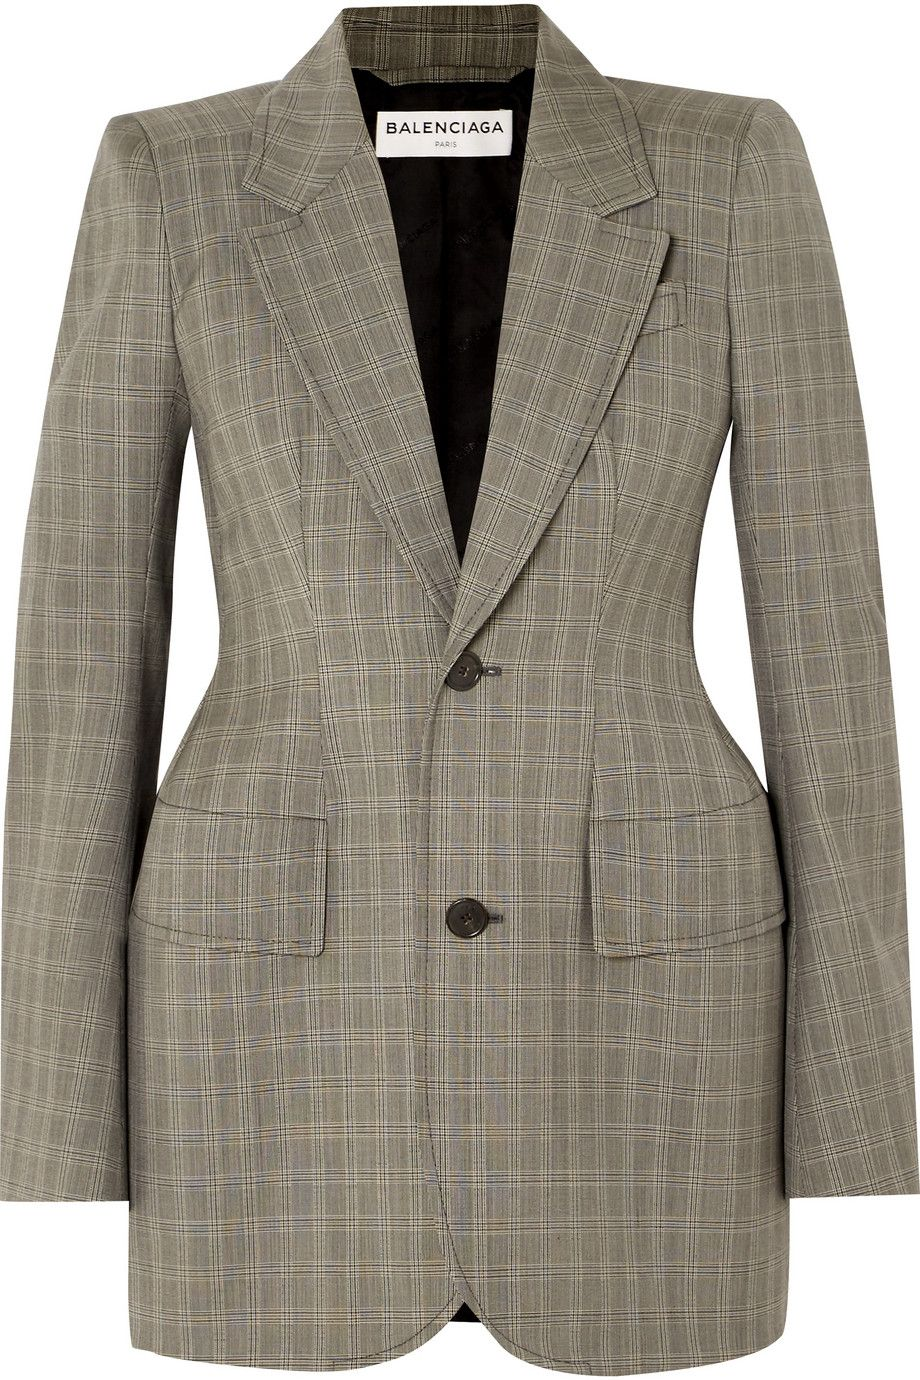 Net-A-Porter x Balenciaga Checked wool and mohair-blend blazer